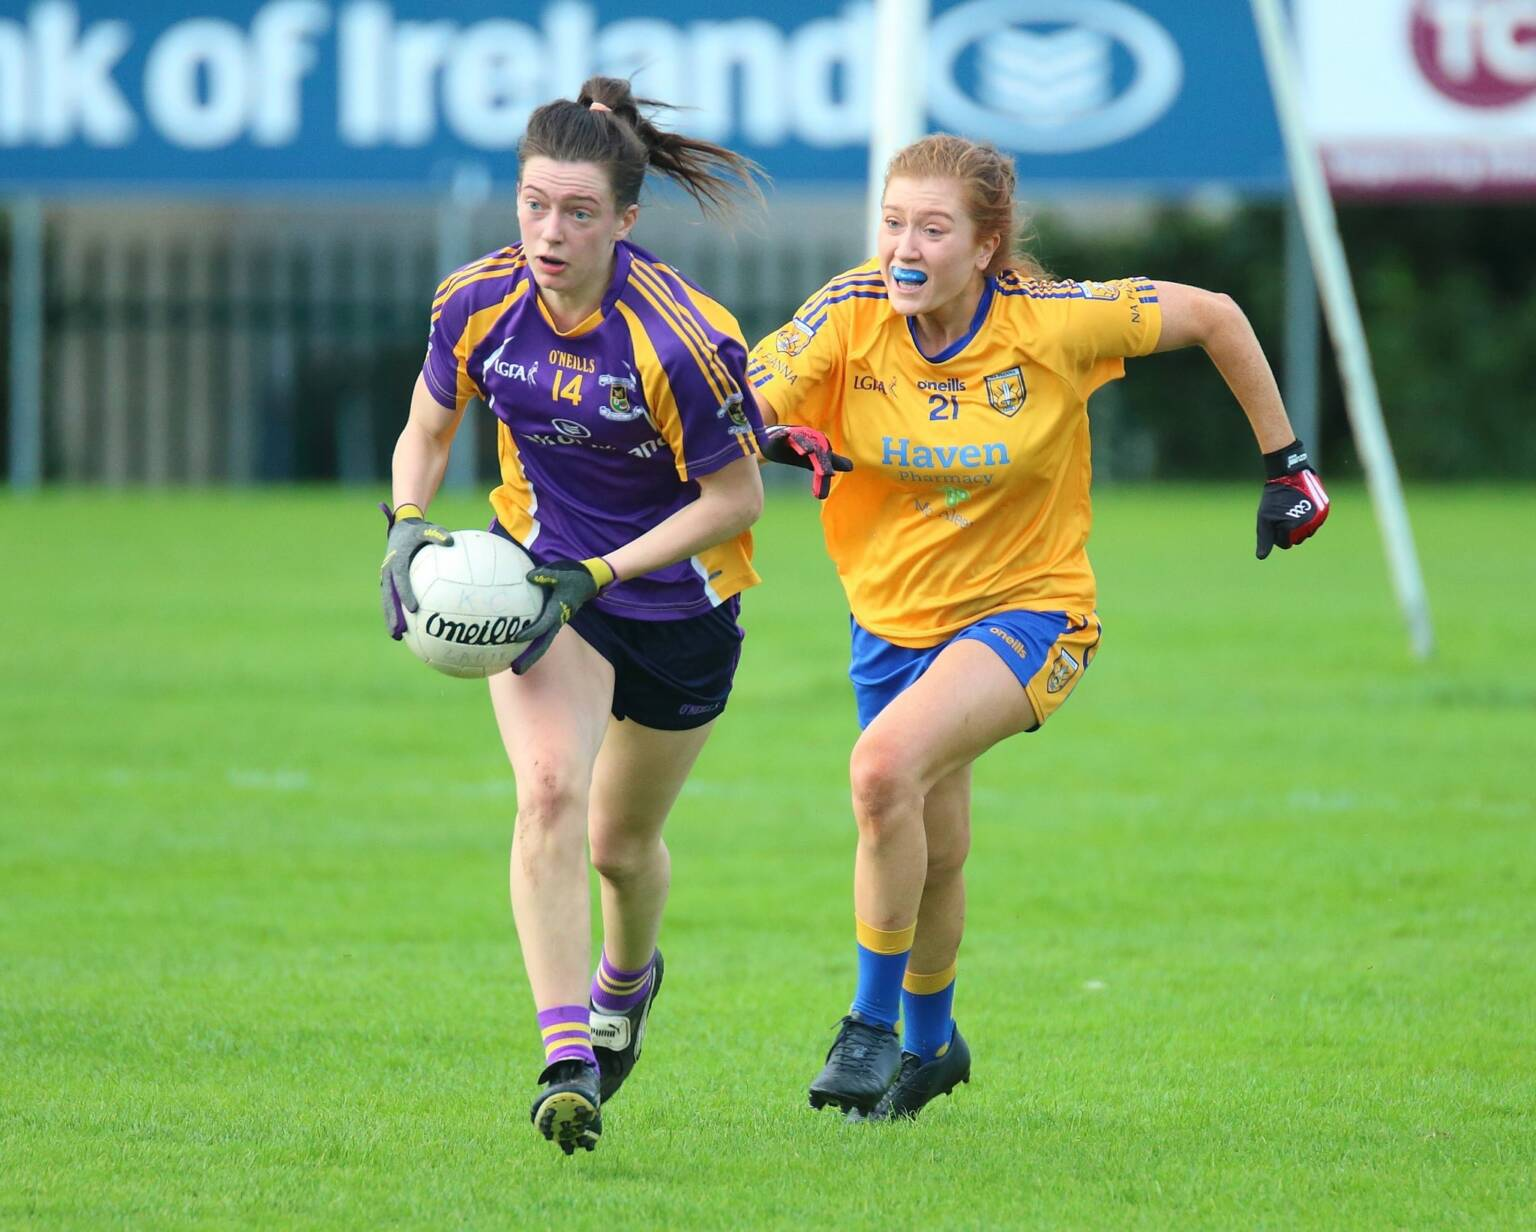 A Kilmacud Crokes ladies footballer races clear from a Na Fianna player during the semi final clash, the final pairings at senior and junior level are now known after last nights semi final results